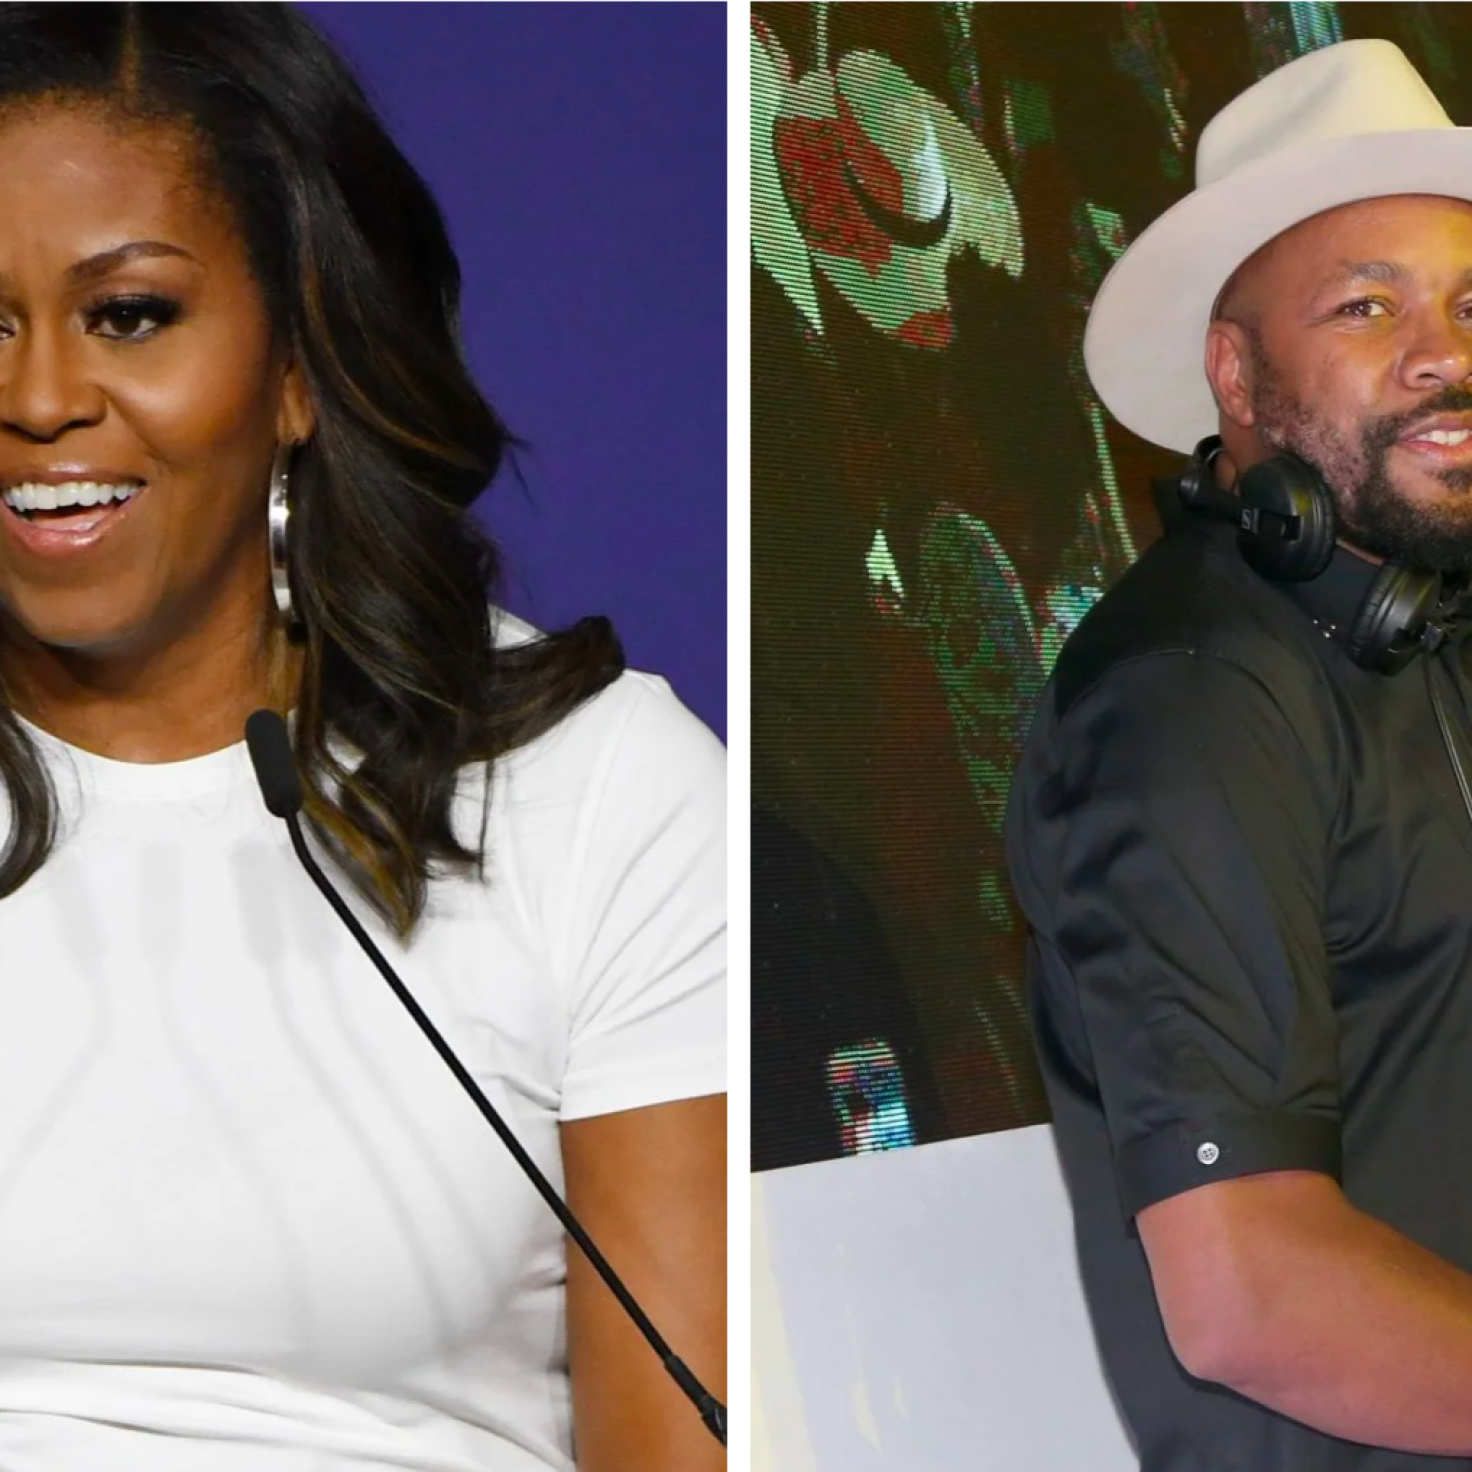 Michelle Obama And DJ D-Nice Are Teaming Up For A Virtual Party